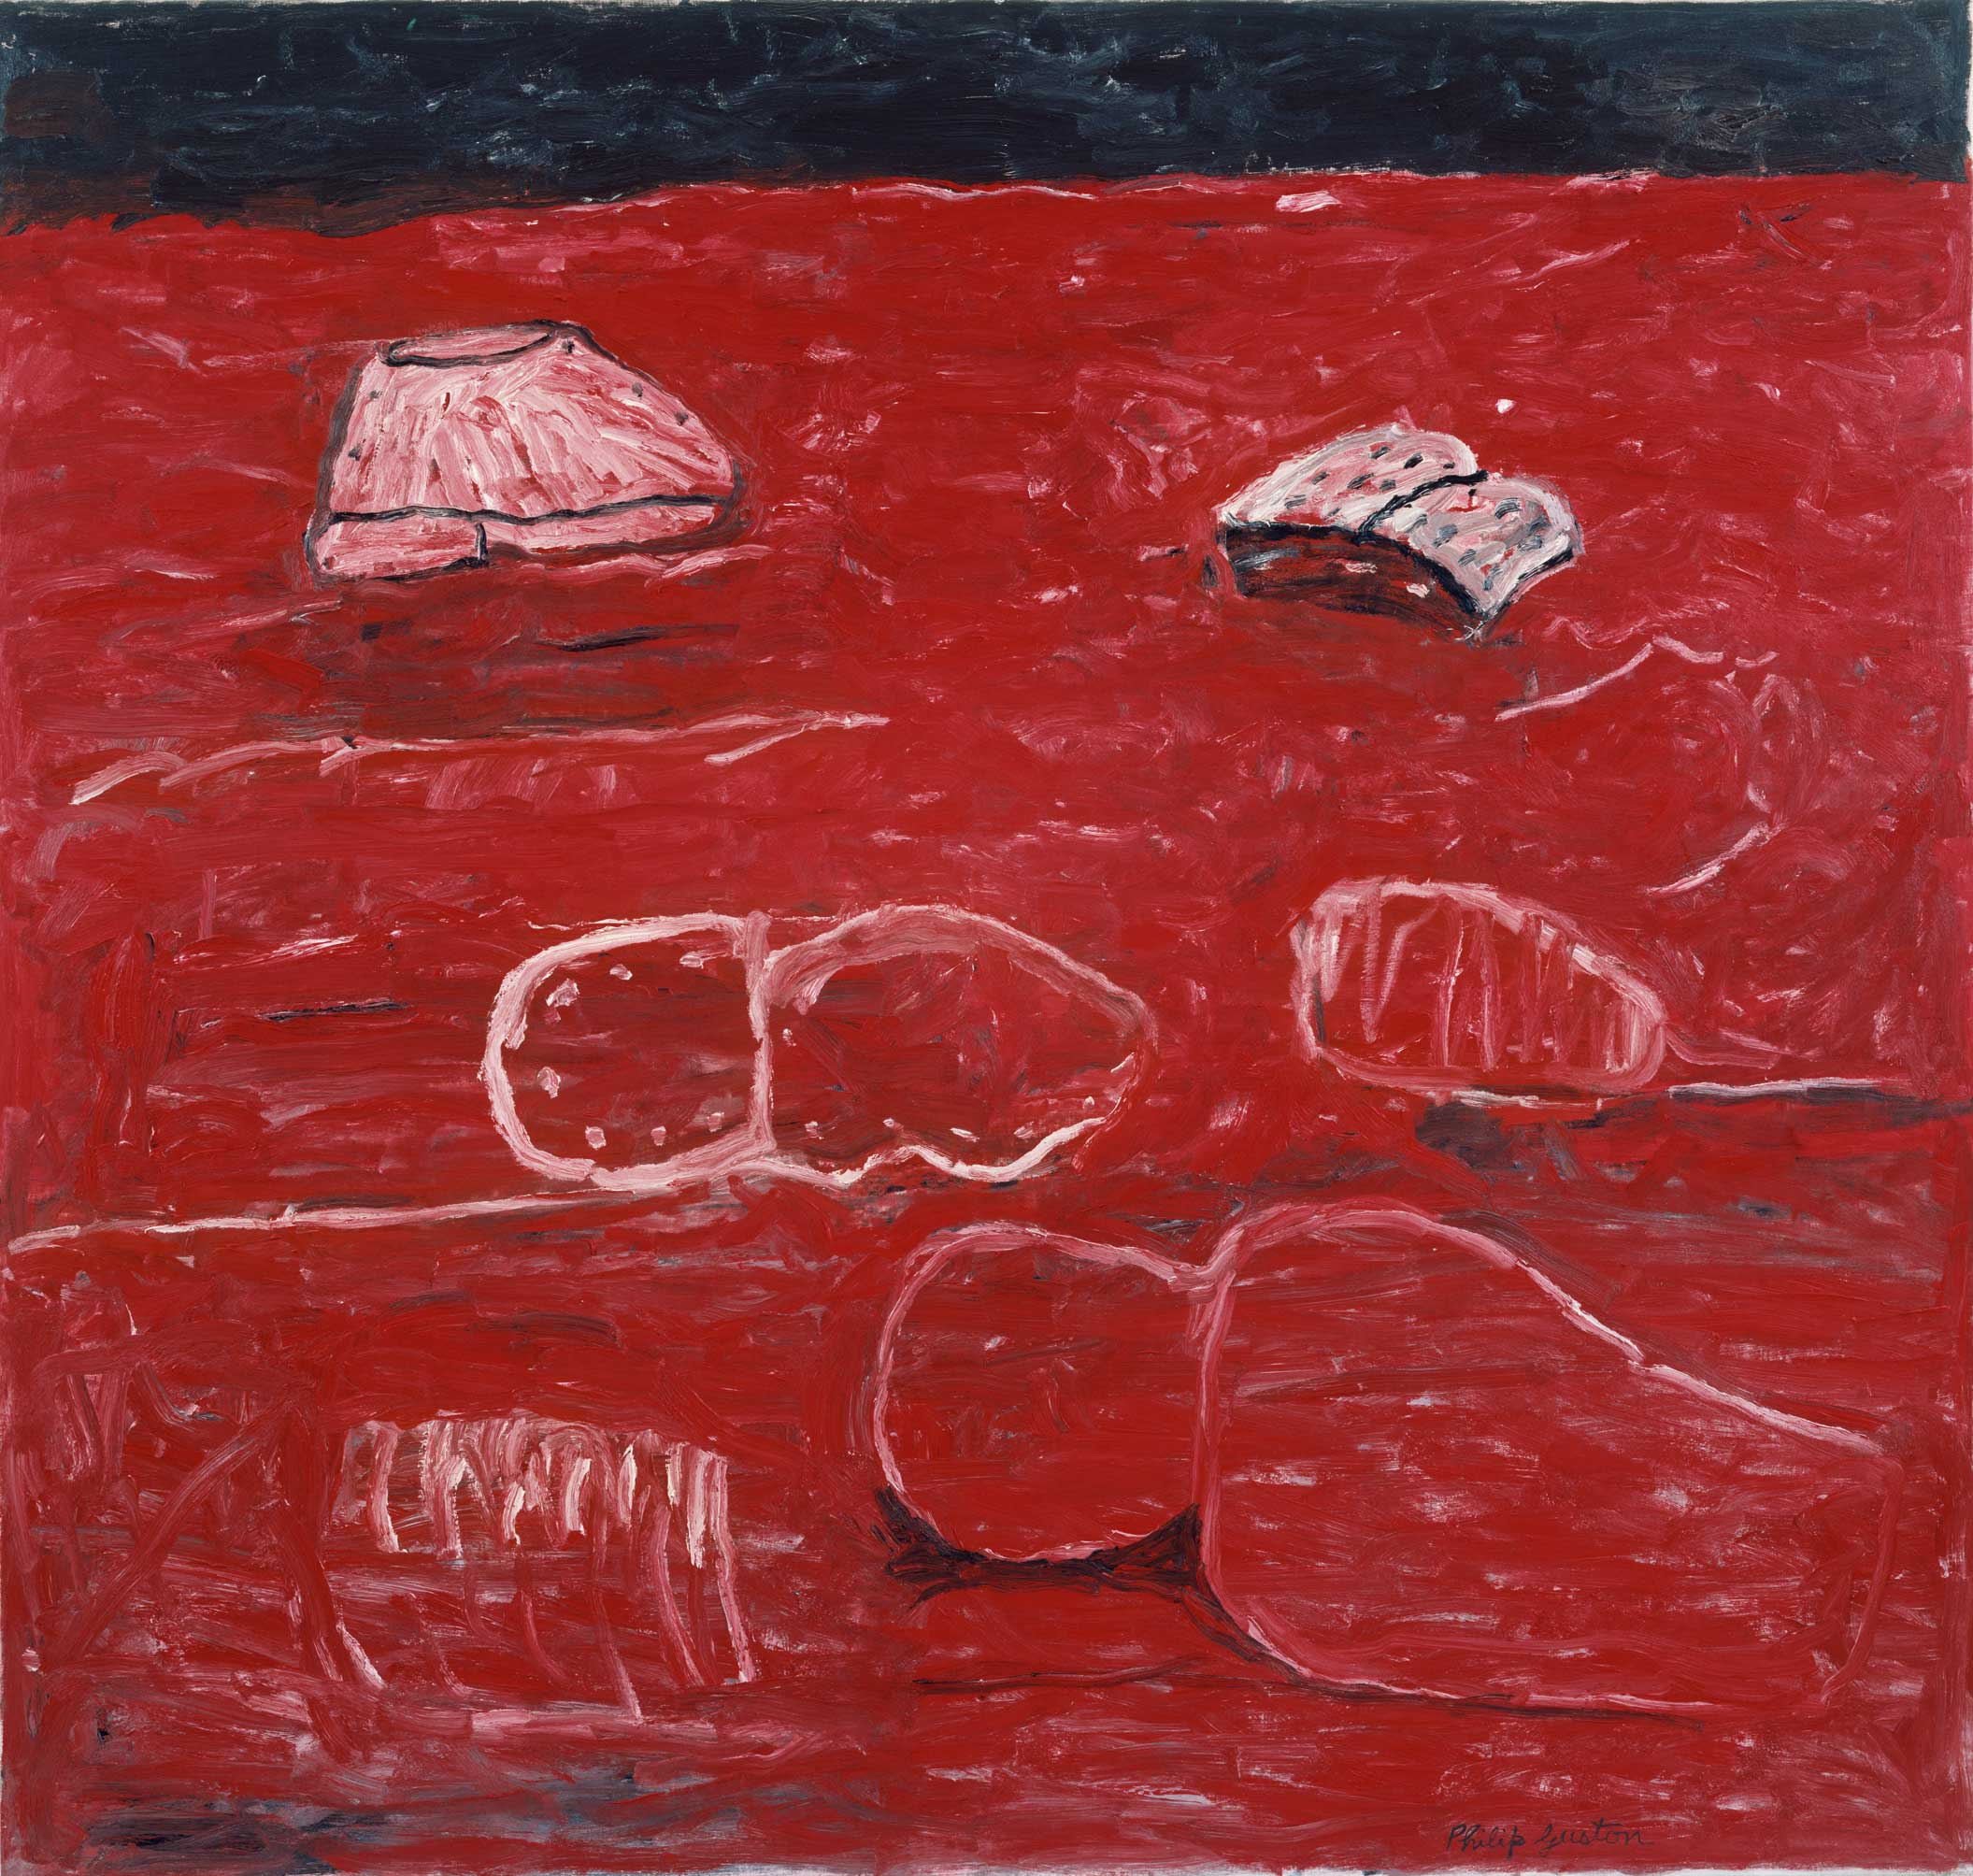 essay on philip guston As it goes, 1978 by philip guston neo-expressionism figurative.